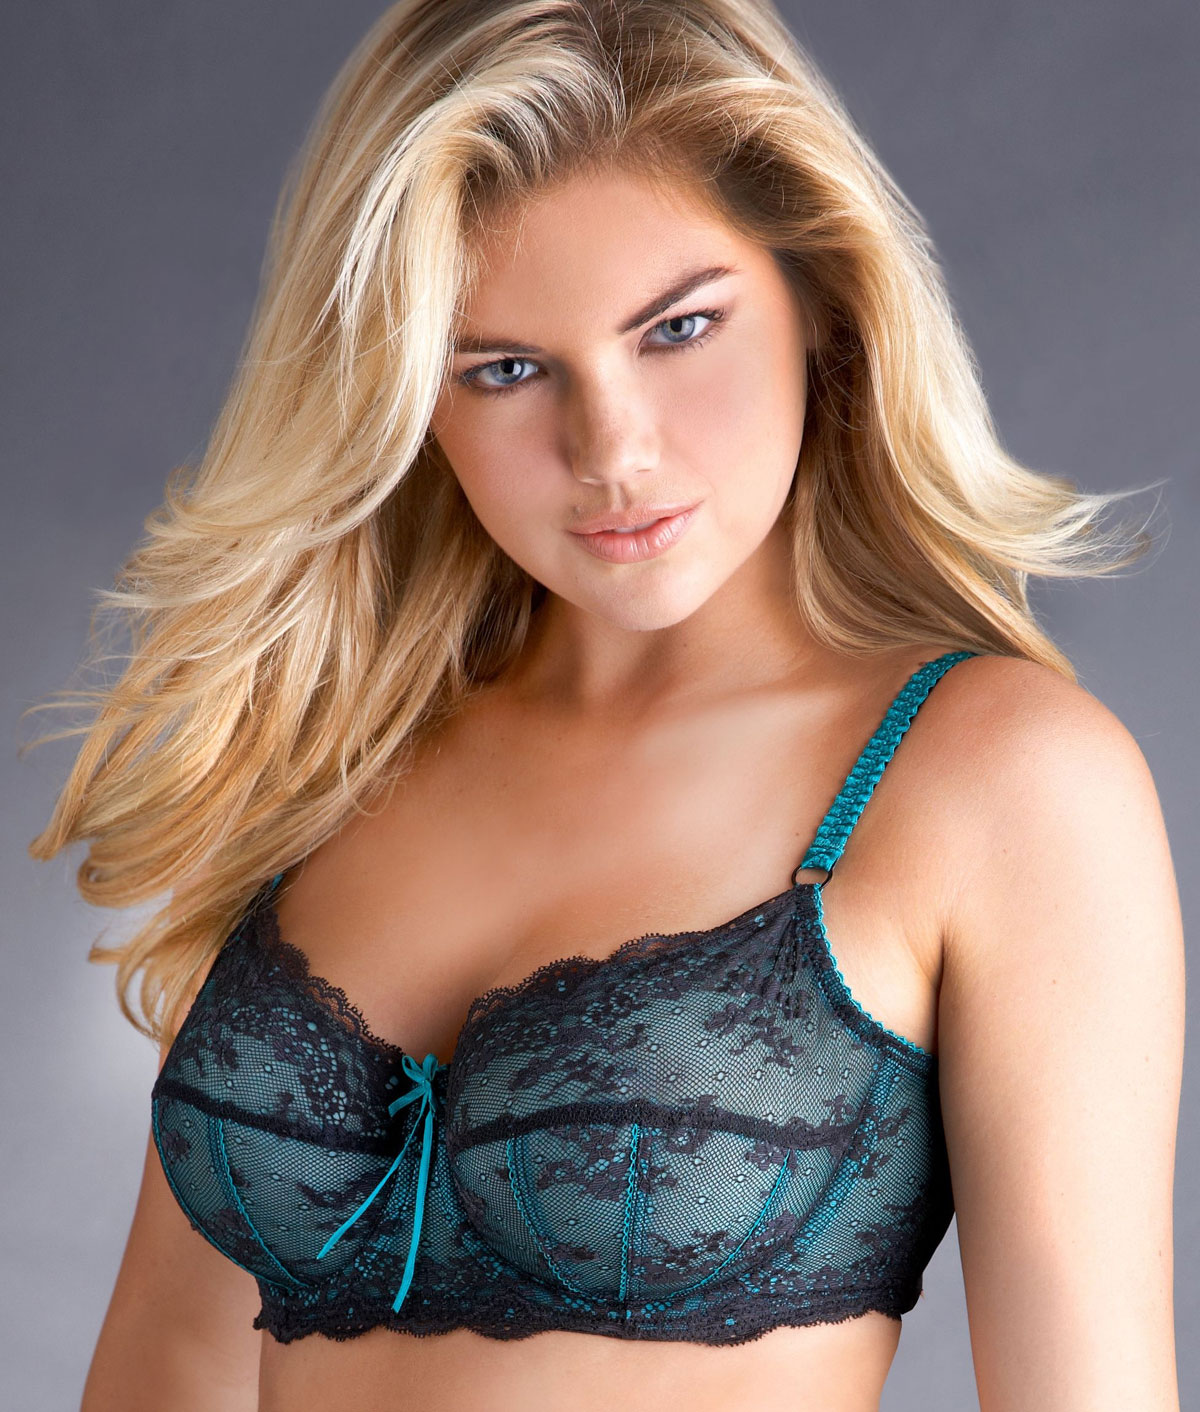 Hot Kate Upton Hoty naked (83 photos), Topless, Cleavage, Instagram, in bikini 2006